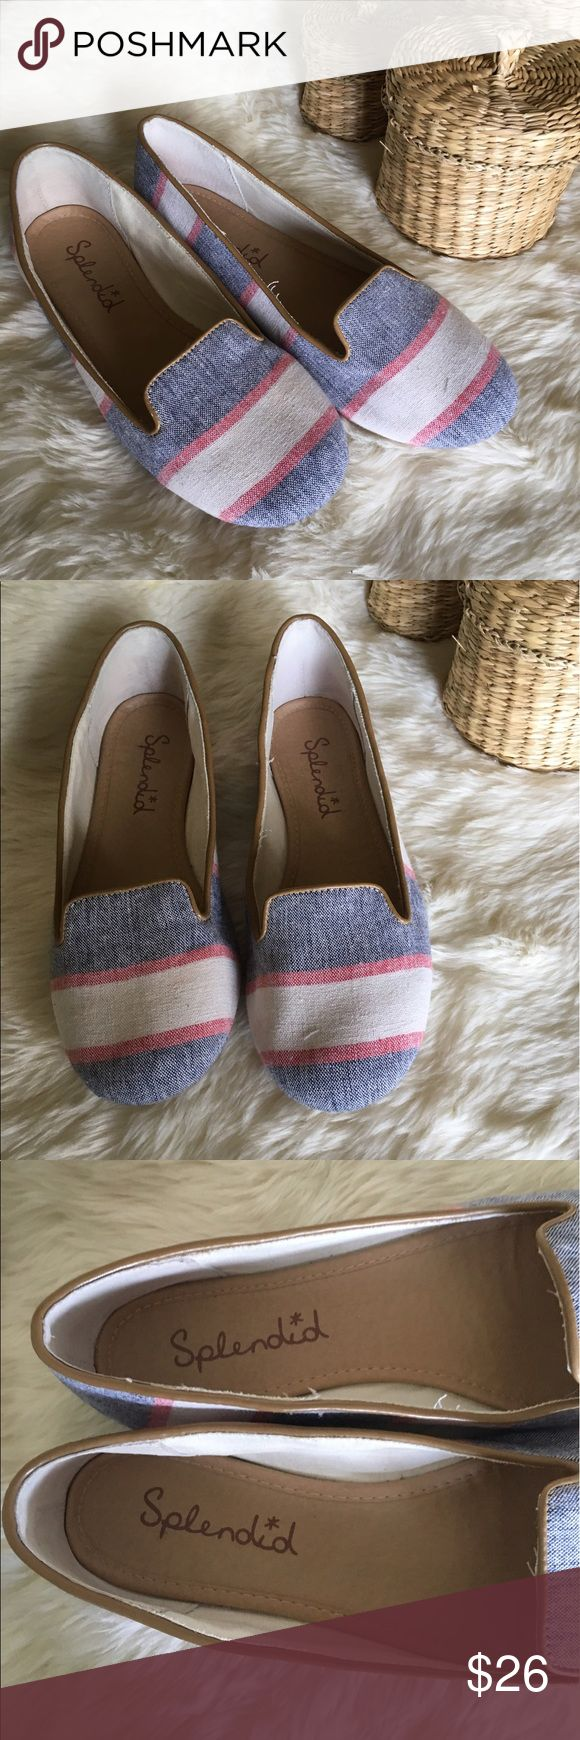 🌸Splendid Preopy Striped Loafer Flats🌸 Super cute striped loafer look flats by Splendid. These are absolutely adorable!! There's a small yellow mark on the inside of the right shoe, and they do run on the smaller side of 7. As always, comment with any questions!! Splendid Shoes Flats & Loafers